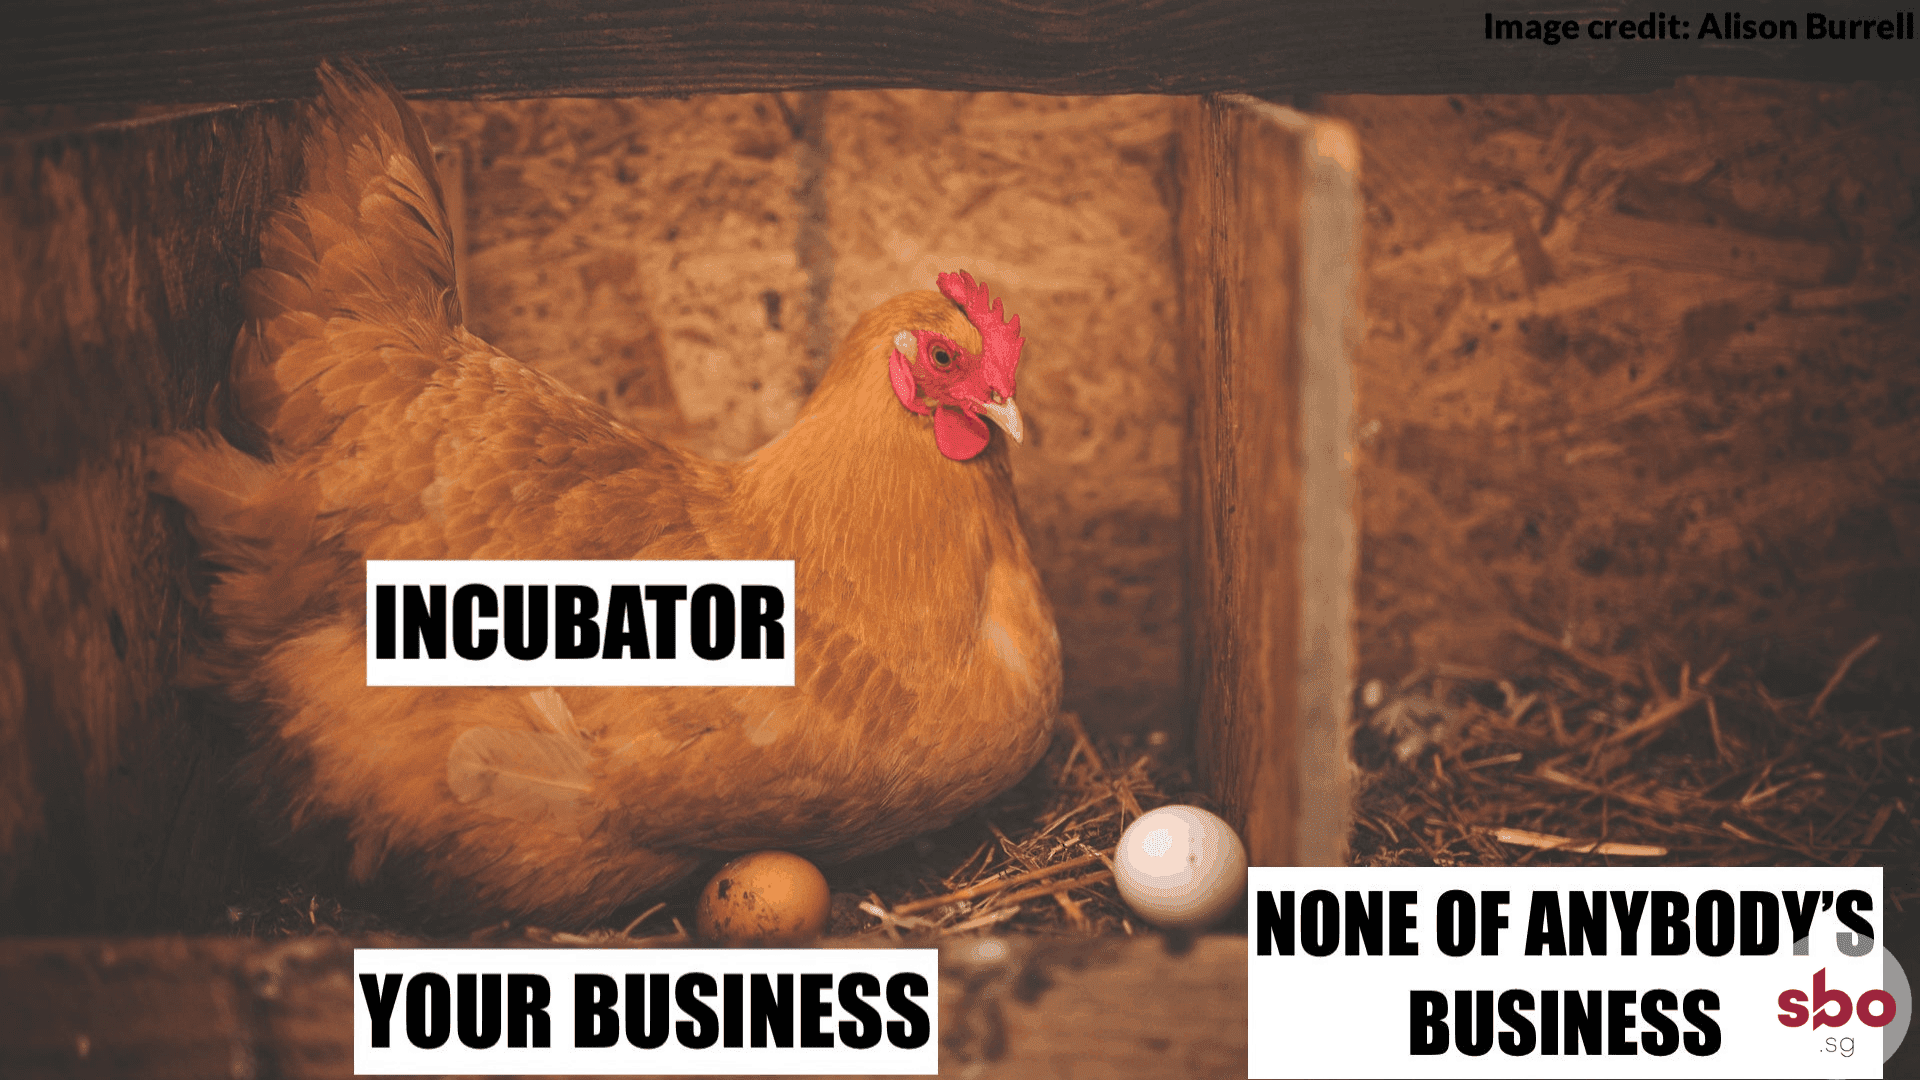 business-startup-incubator-chicken-eggs-pros-cons